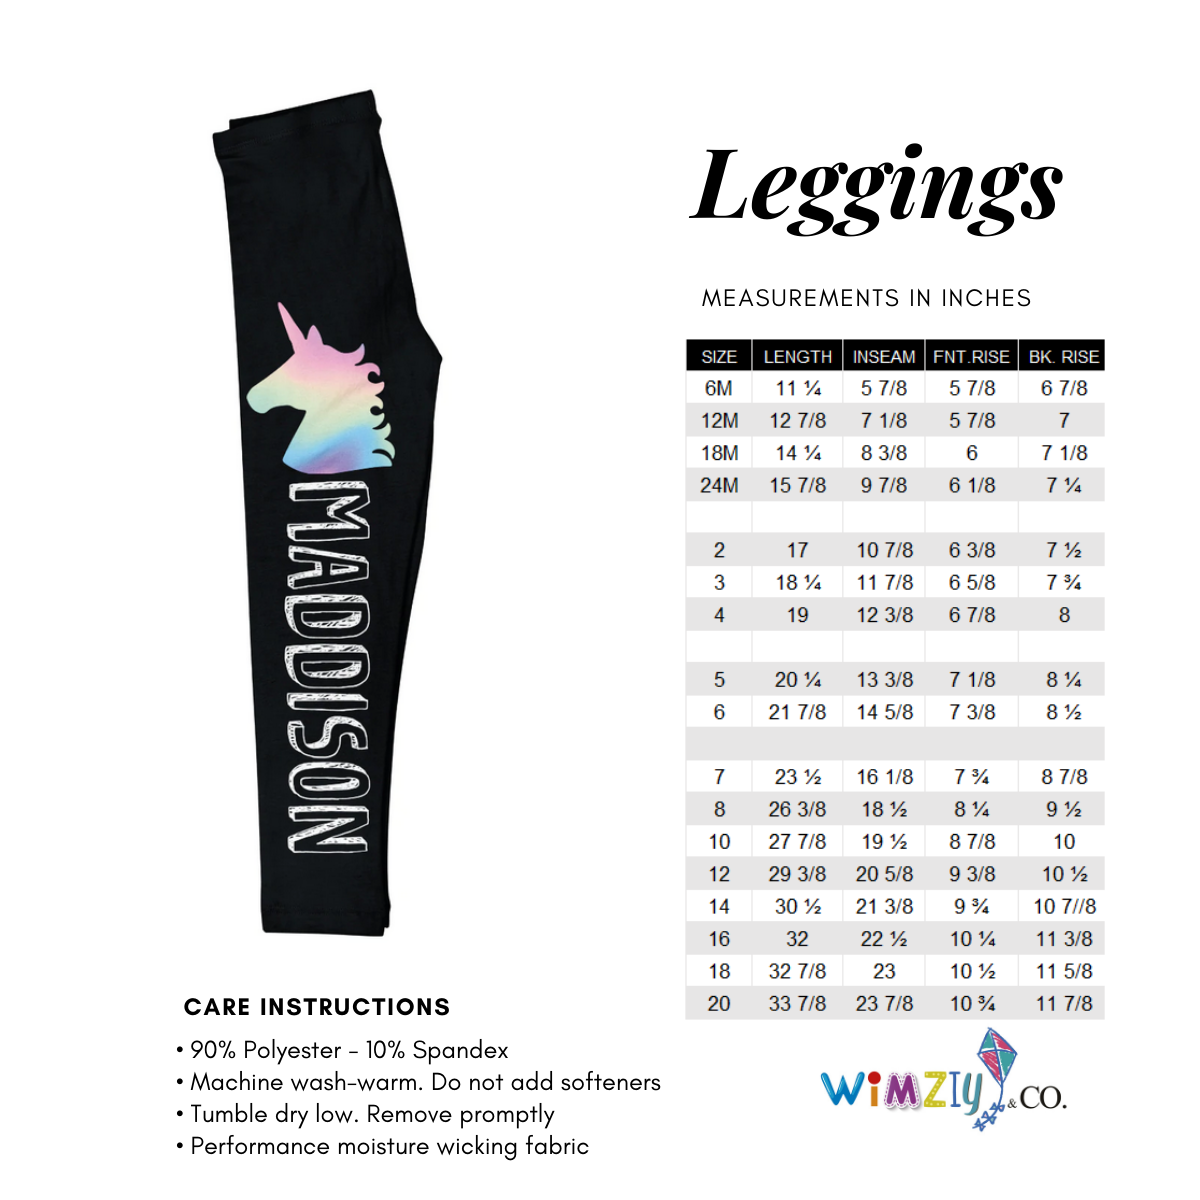 Dance Silhouette Name Black Leggings - Wimziy&Co.